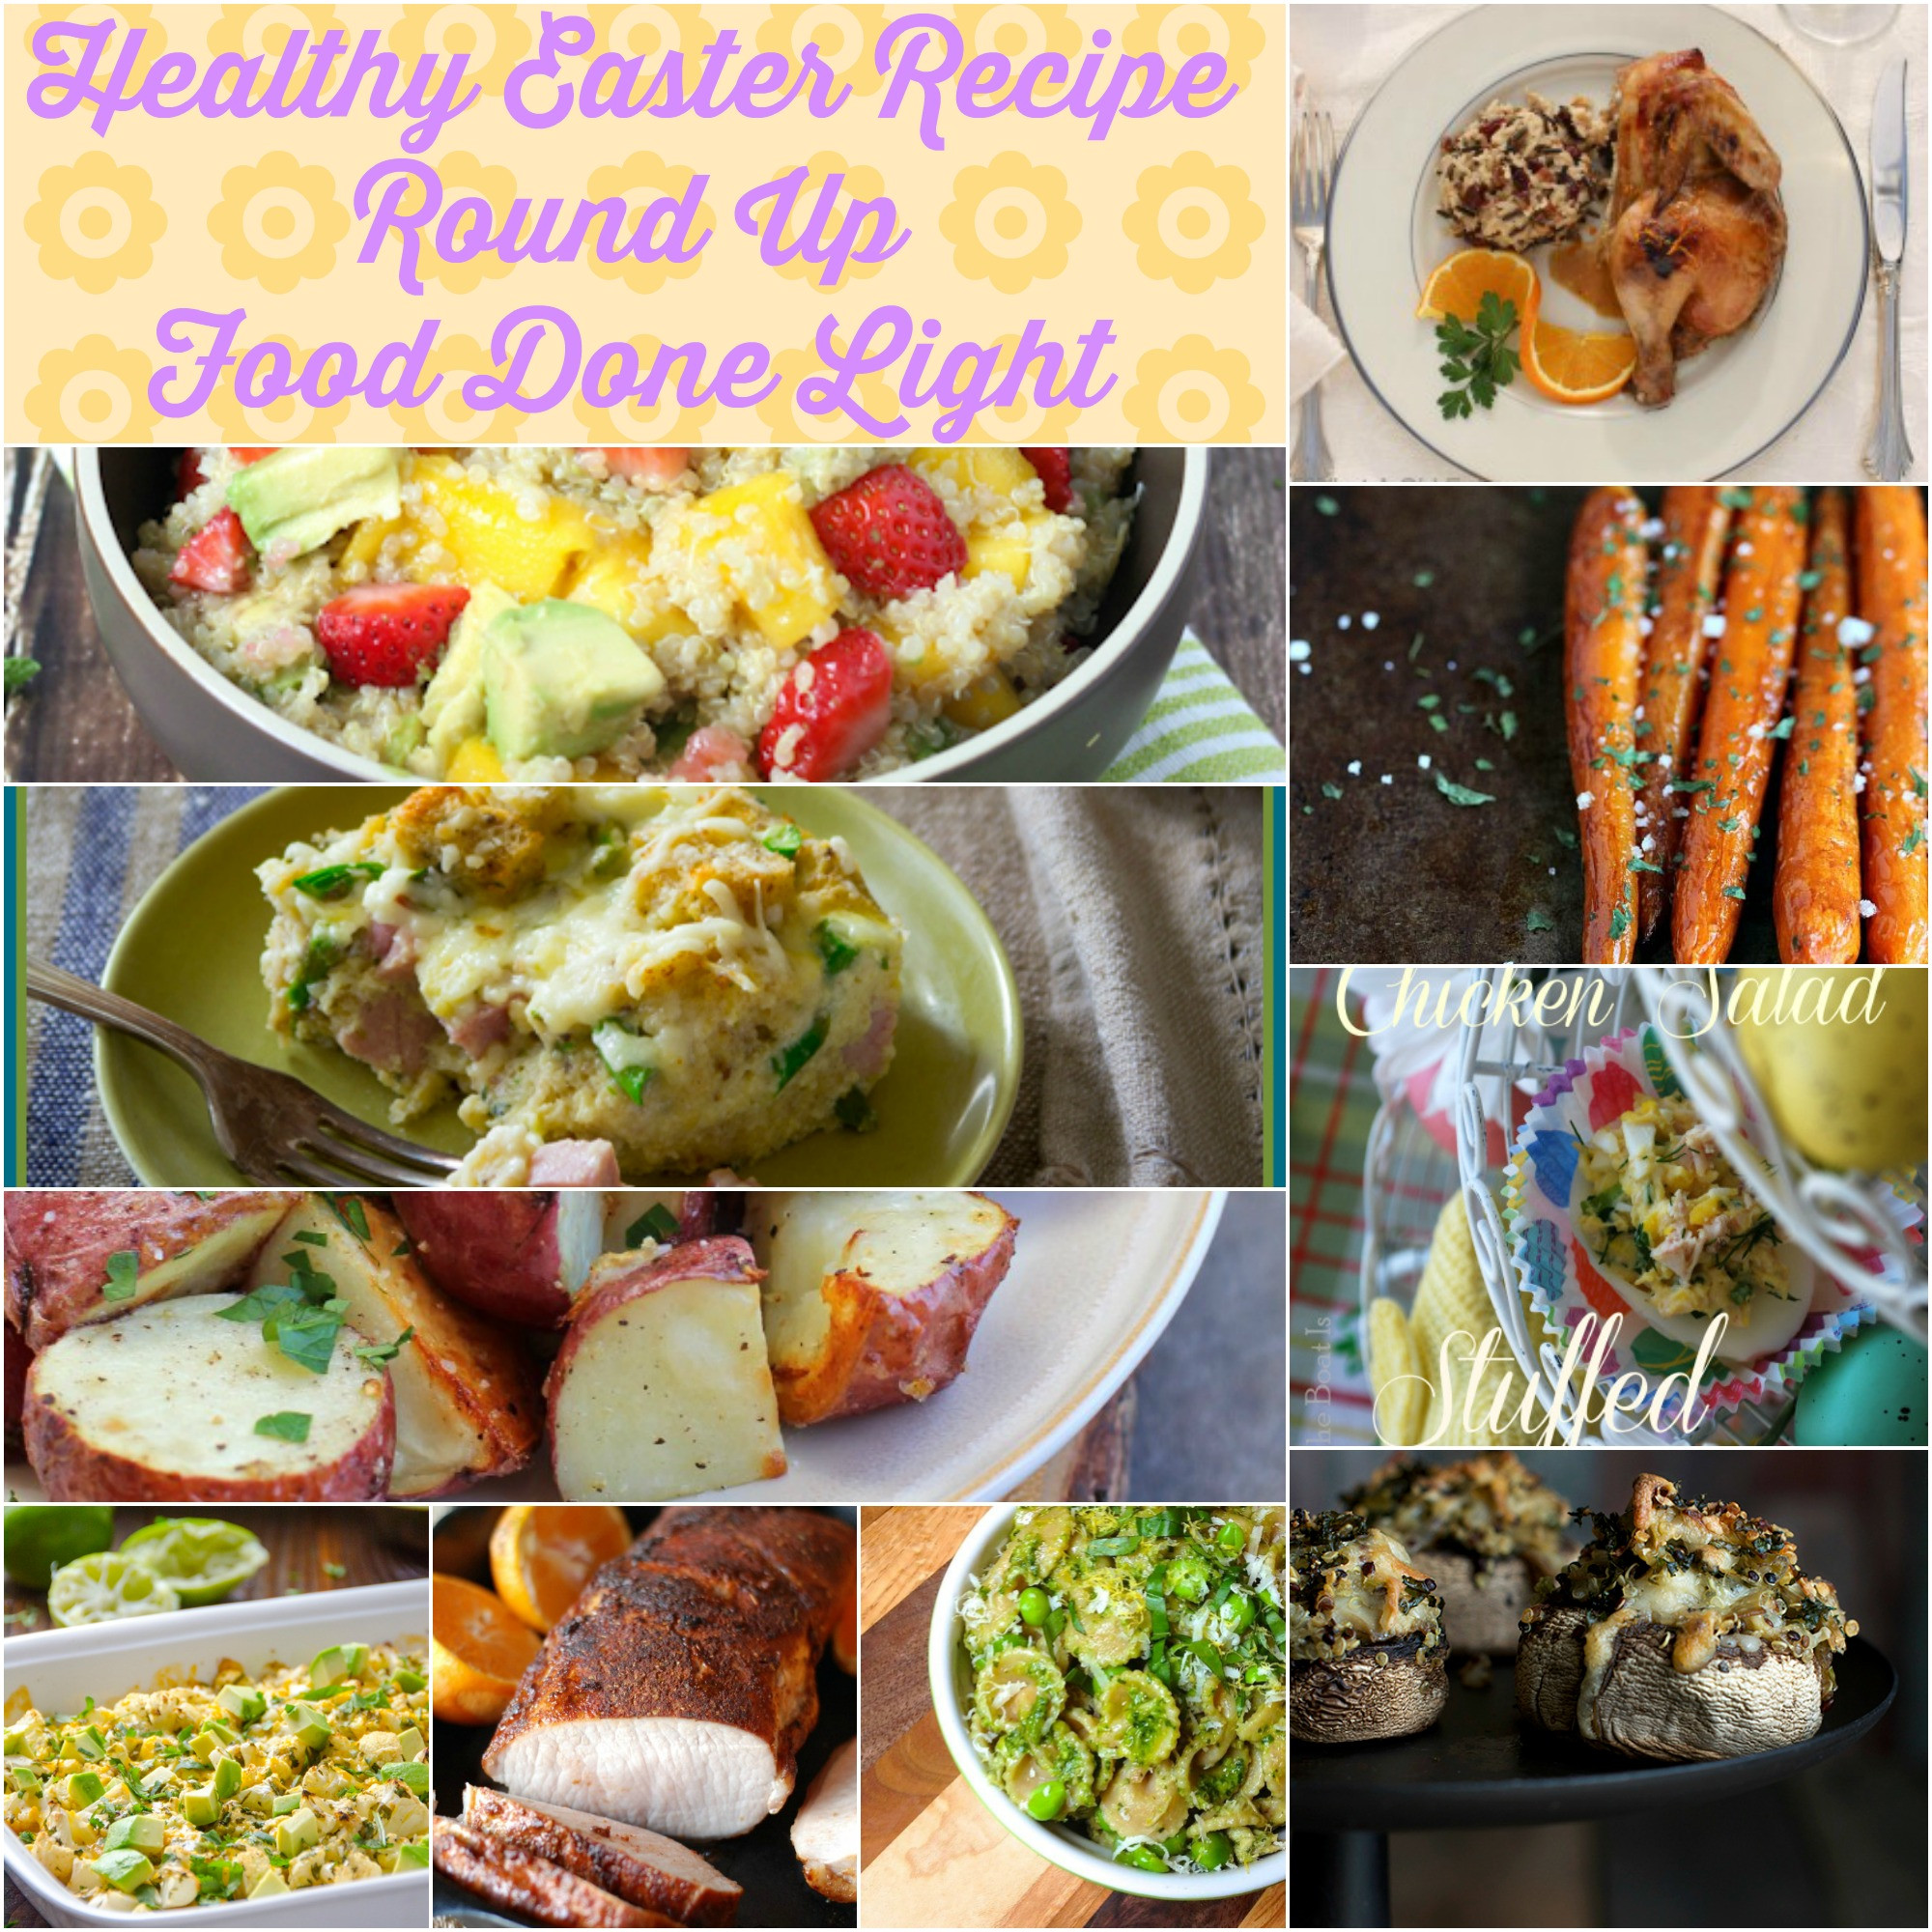 Healthy Easter Dinner  Healthy Easter Recipe Round Up Food Done Light